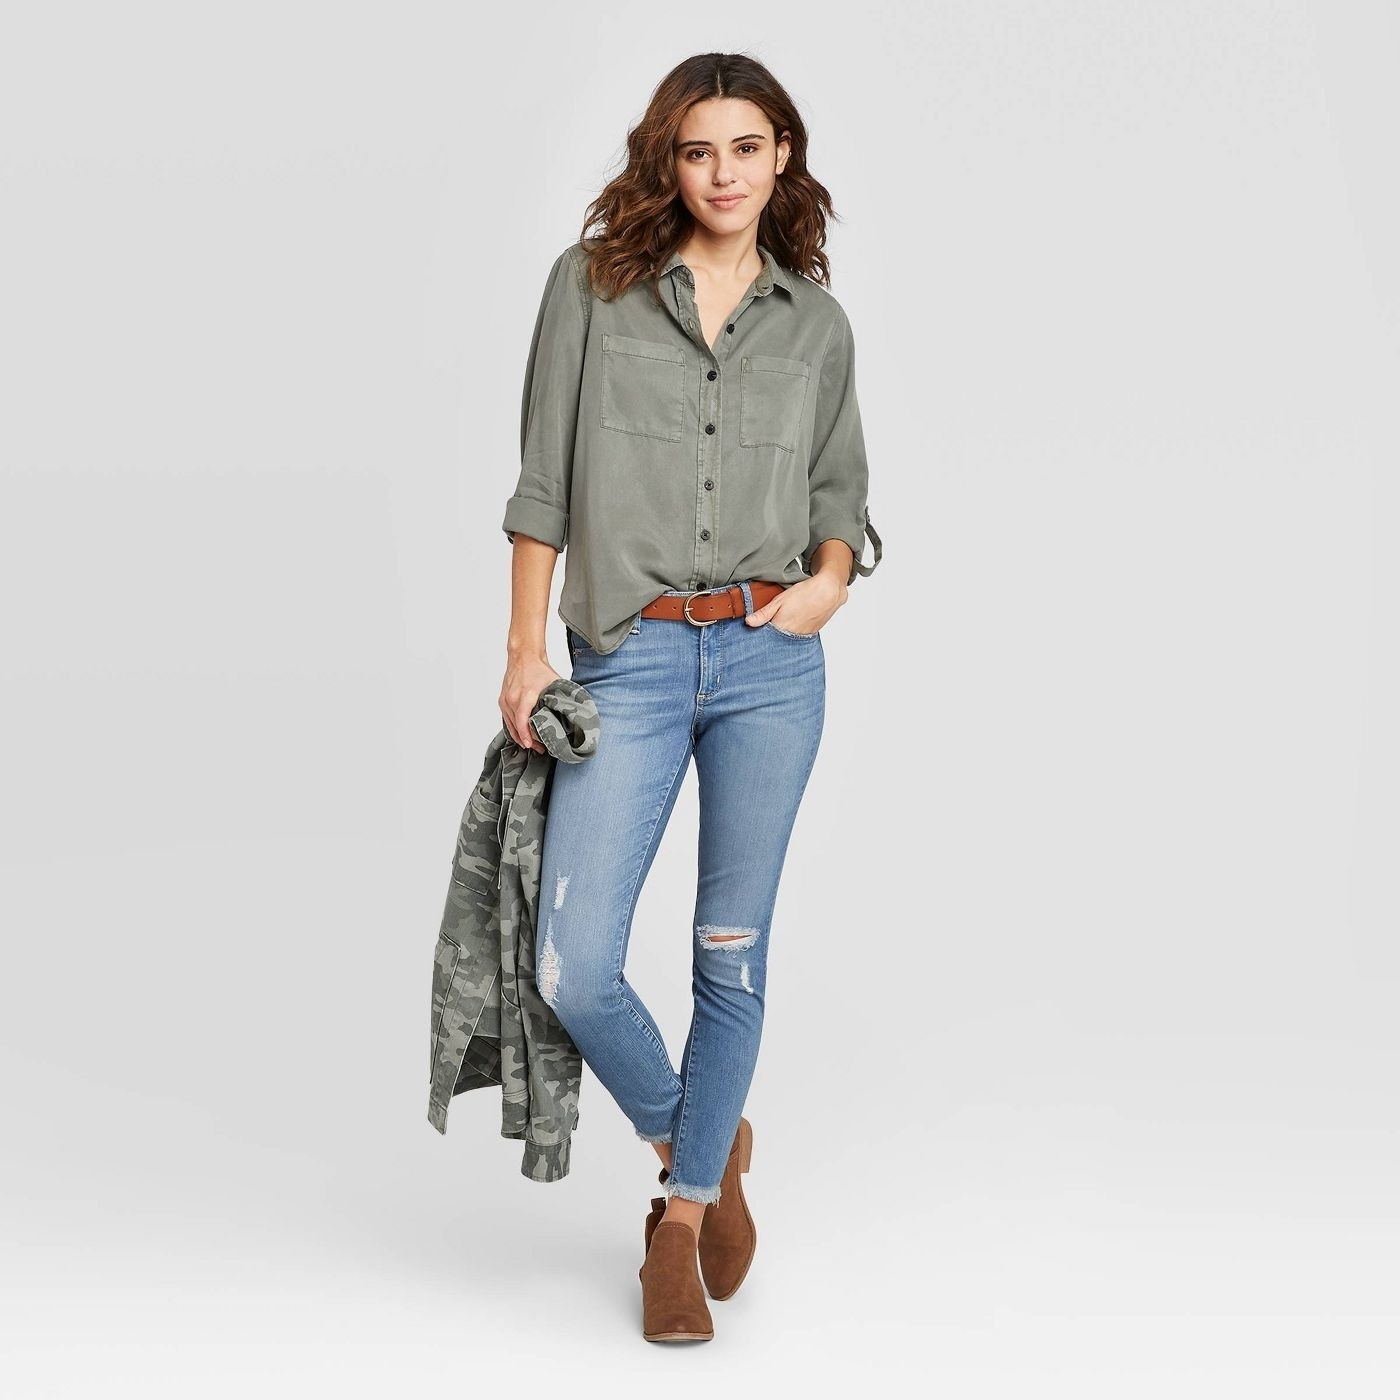 Model in flowy green long sleeve button-down shirt